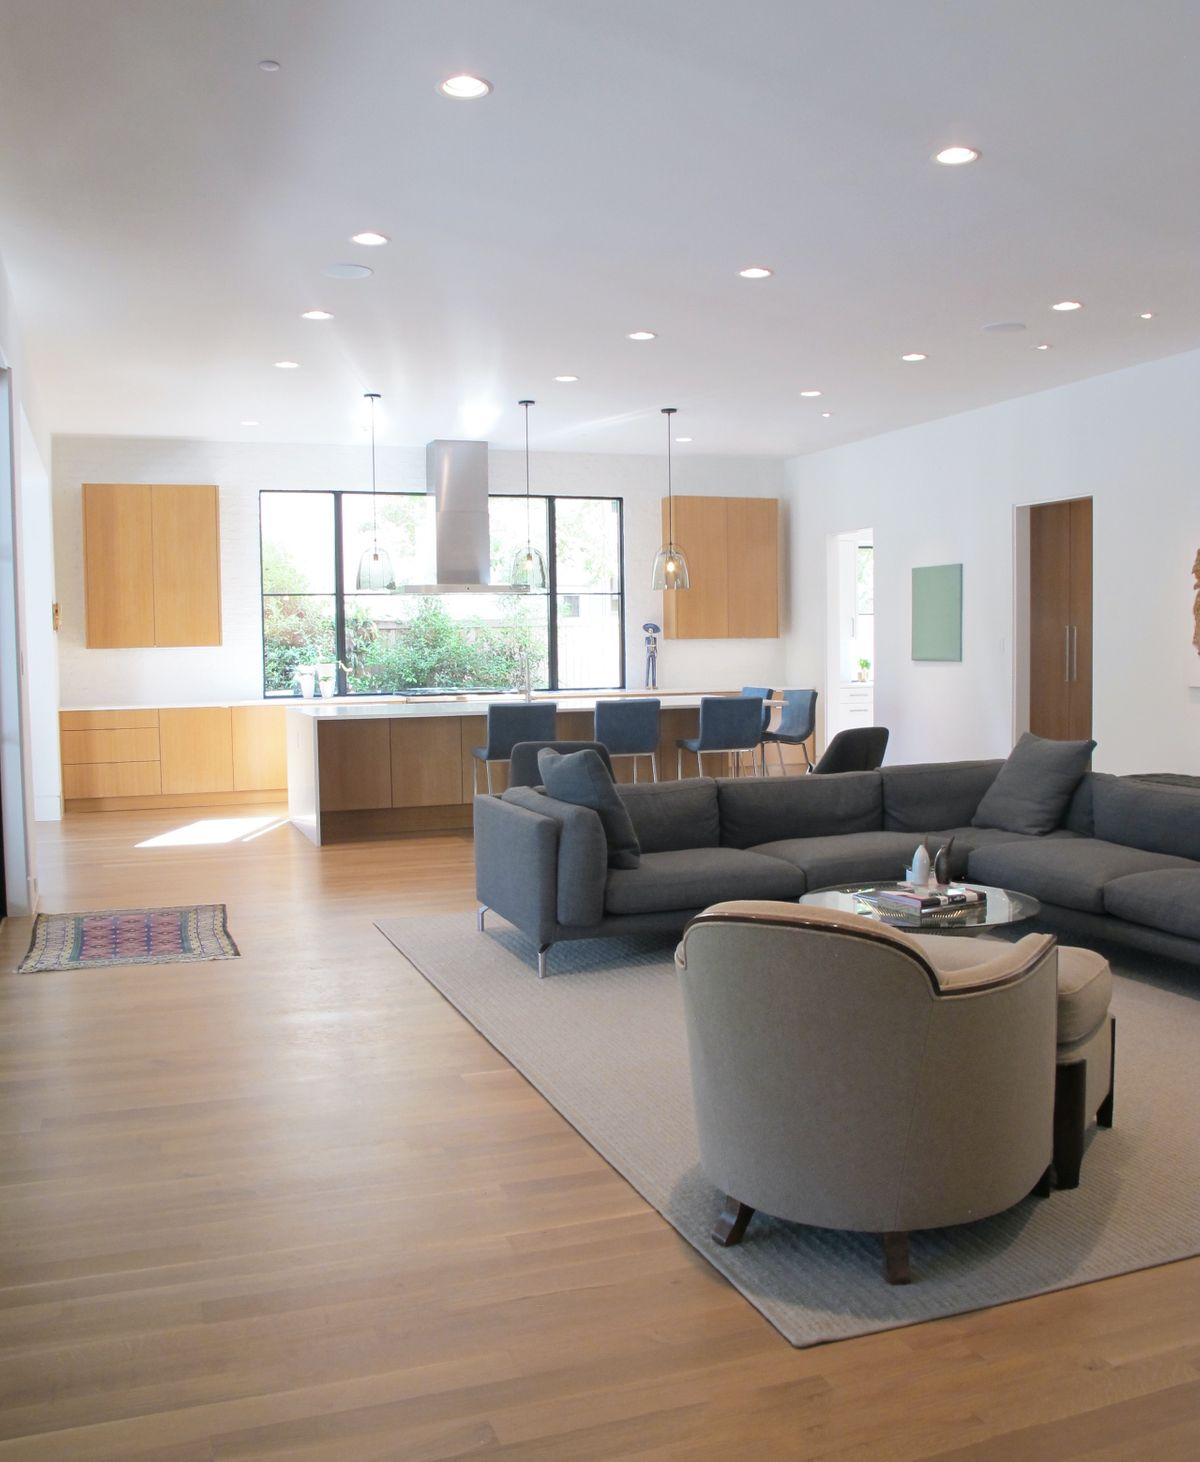 Bluffview Contemporary Modern Home Photo Video Shoot Location Dallas 18.jpg